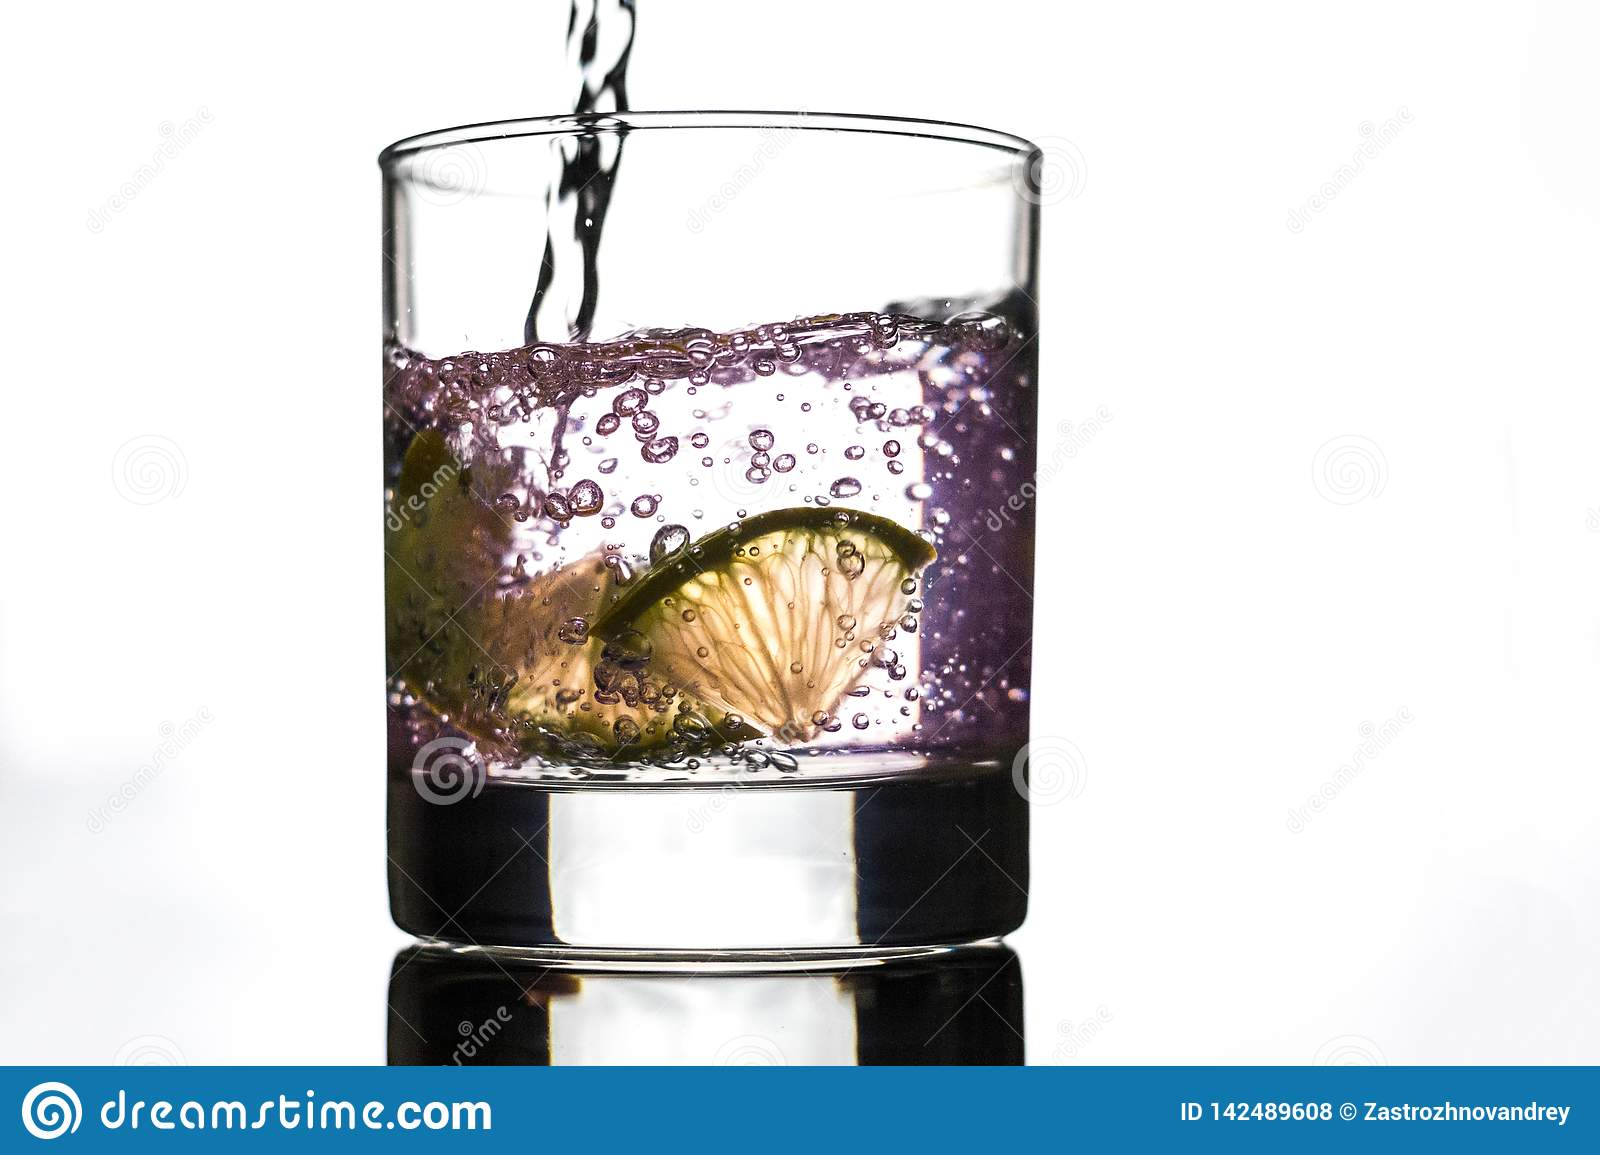 Slices of lemon in a glass of rose water